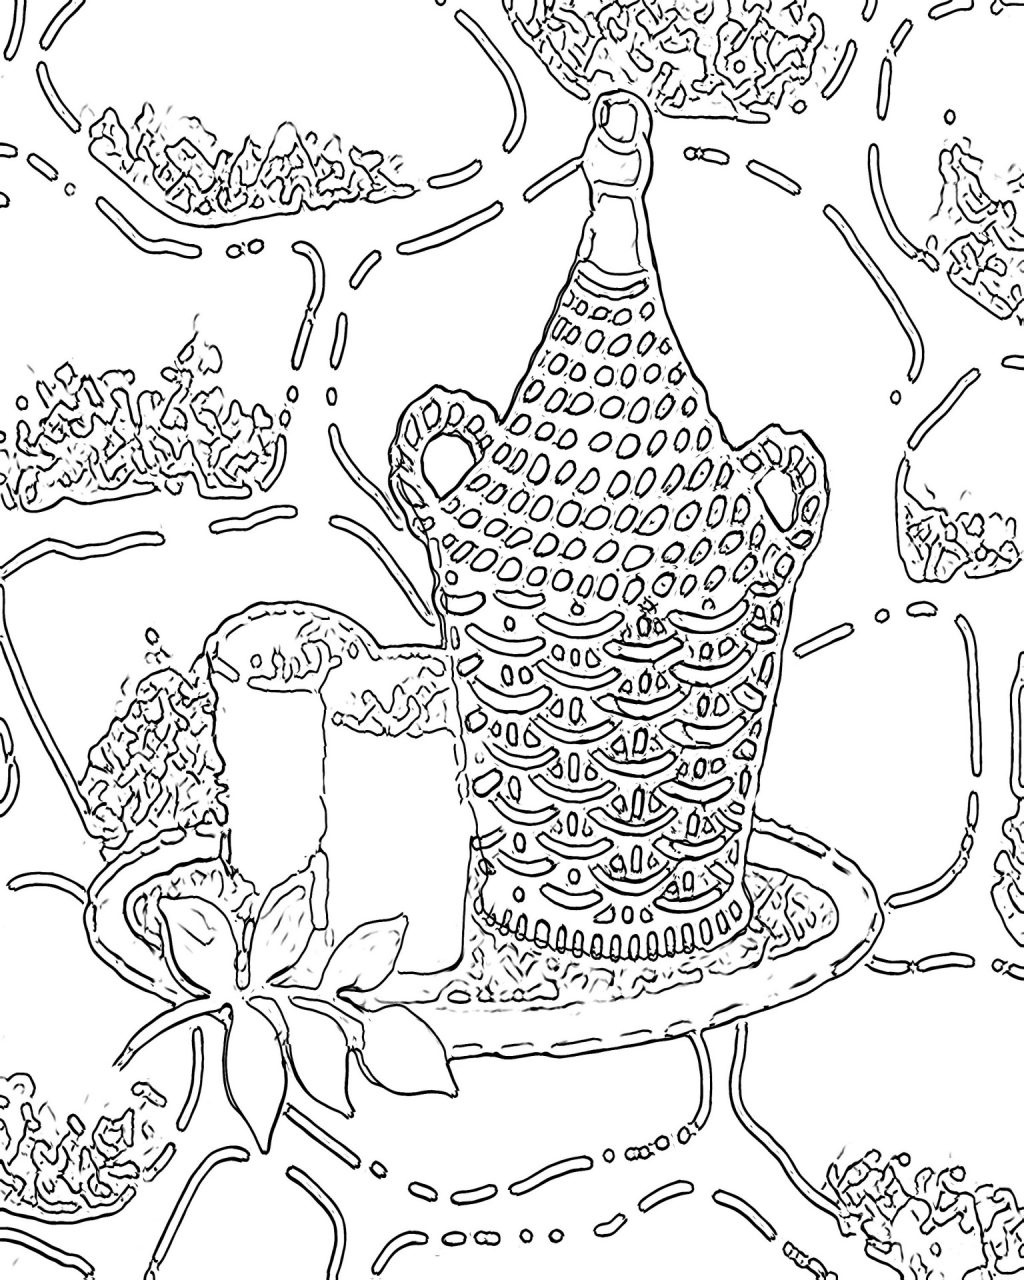 Coloring Page ~ Adult Coloring Books Nature Page Free Printable - Free Printable Nature Coloring Pages For Adults